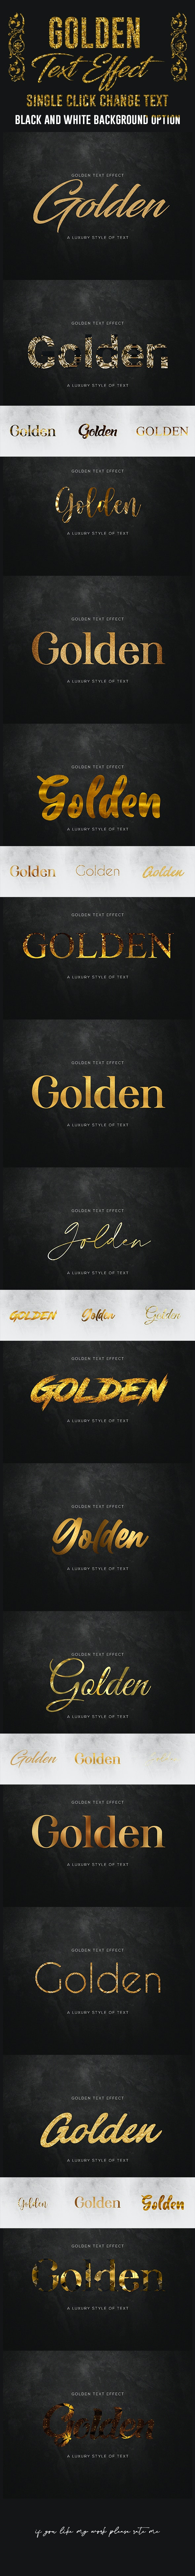 Gold Text Effect - Text Effects Actions